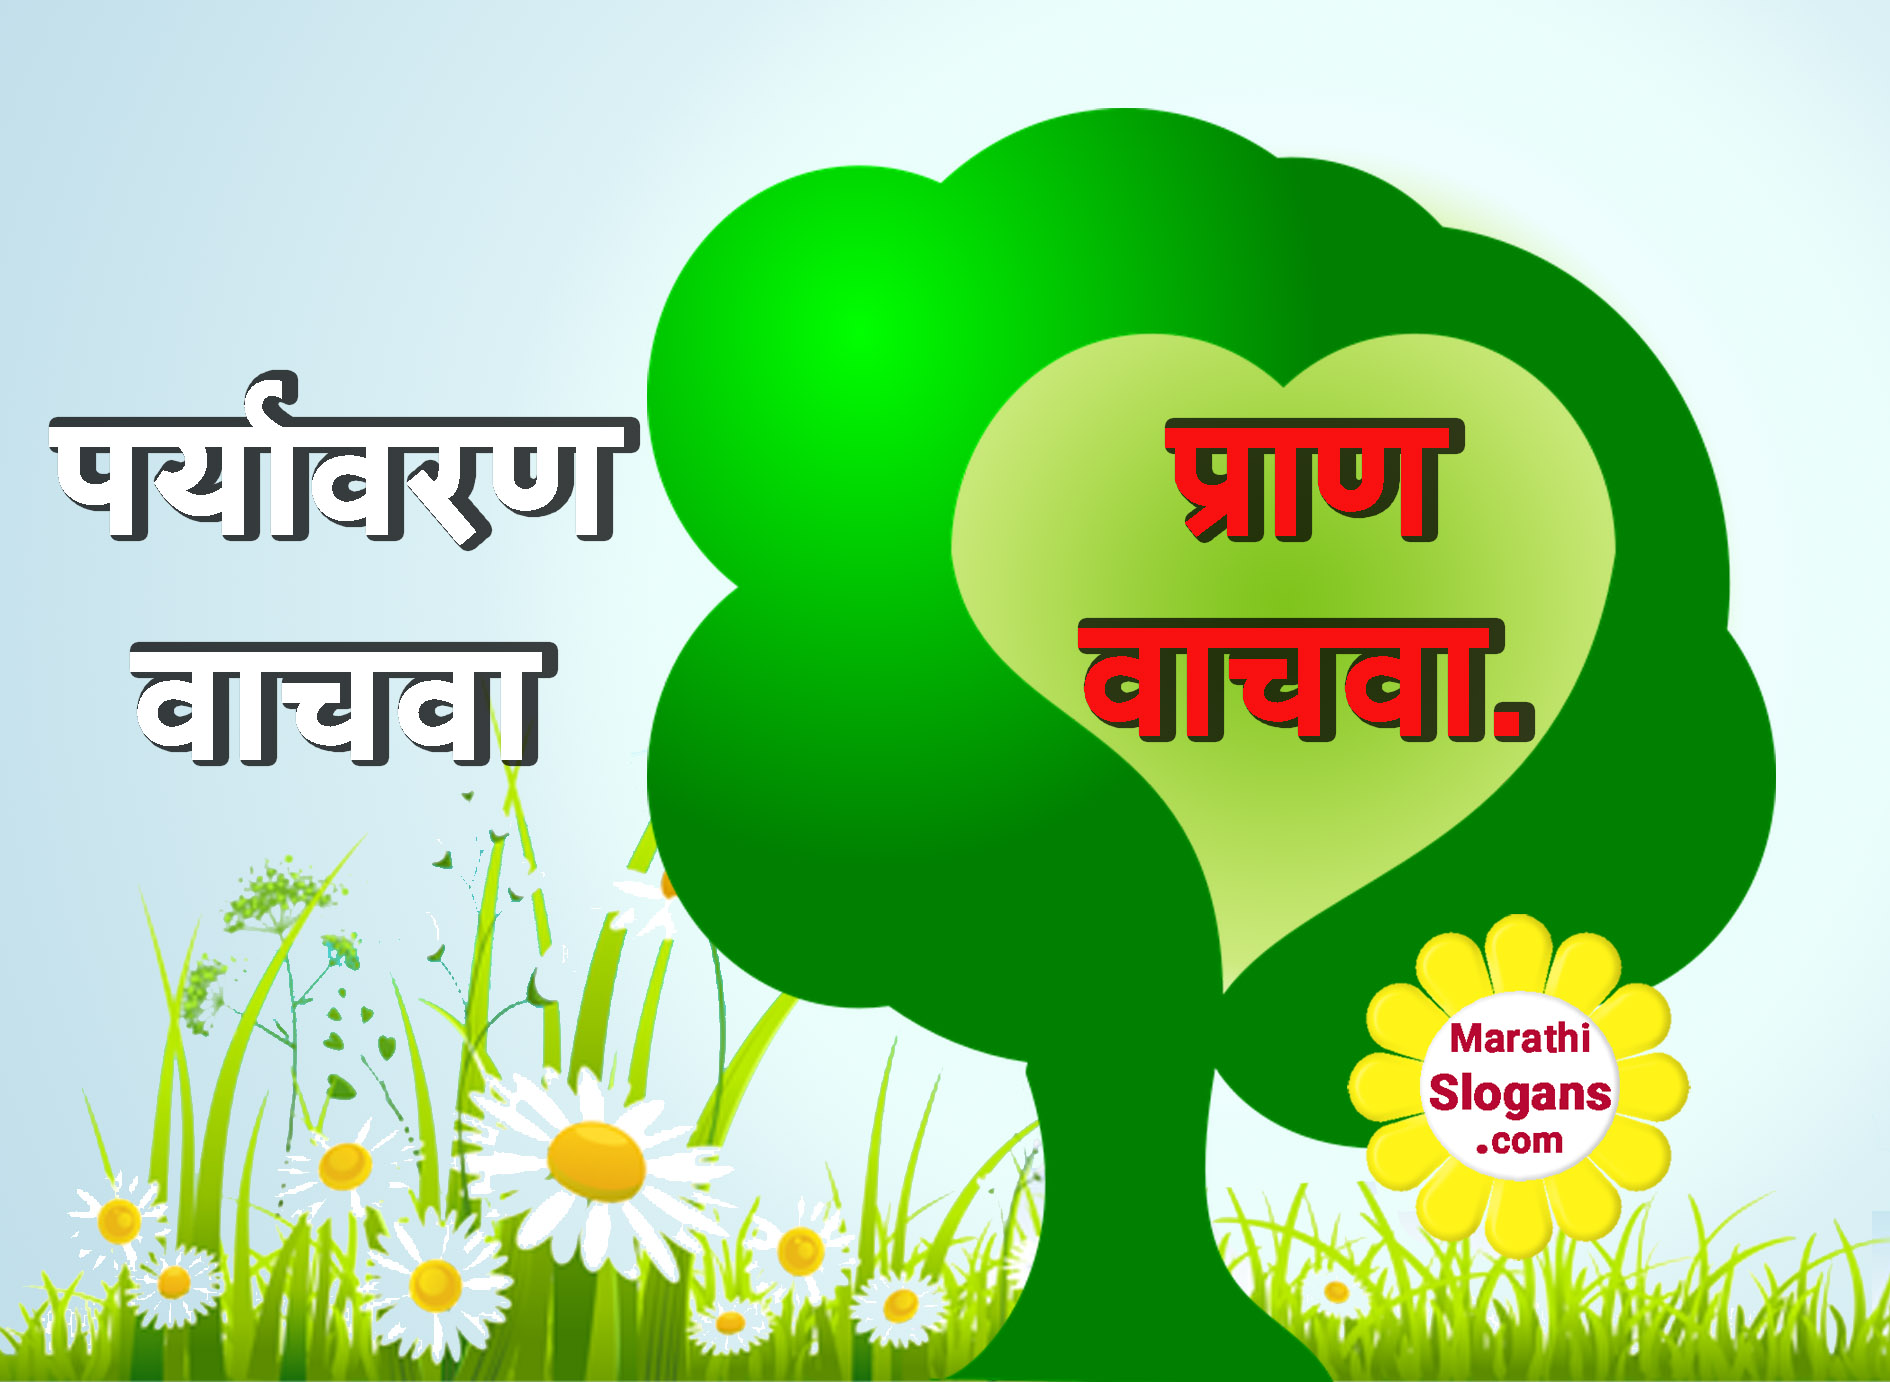 save tree in marathi research paper writing service eressayojxb